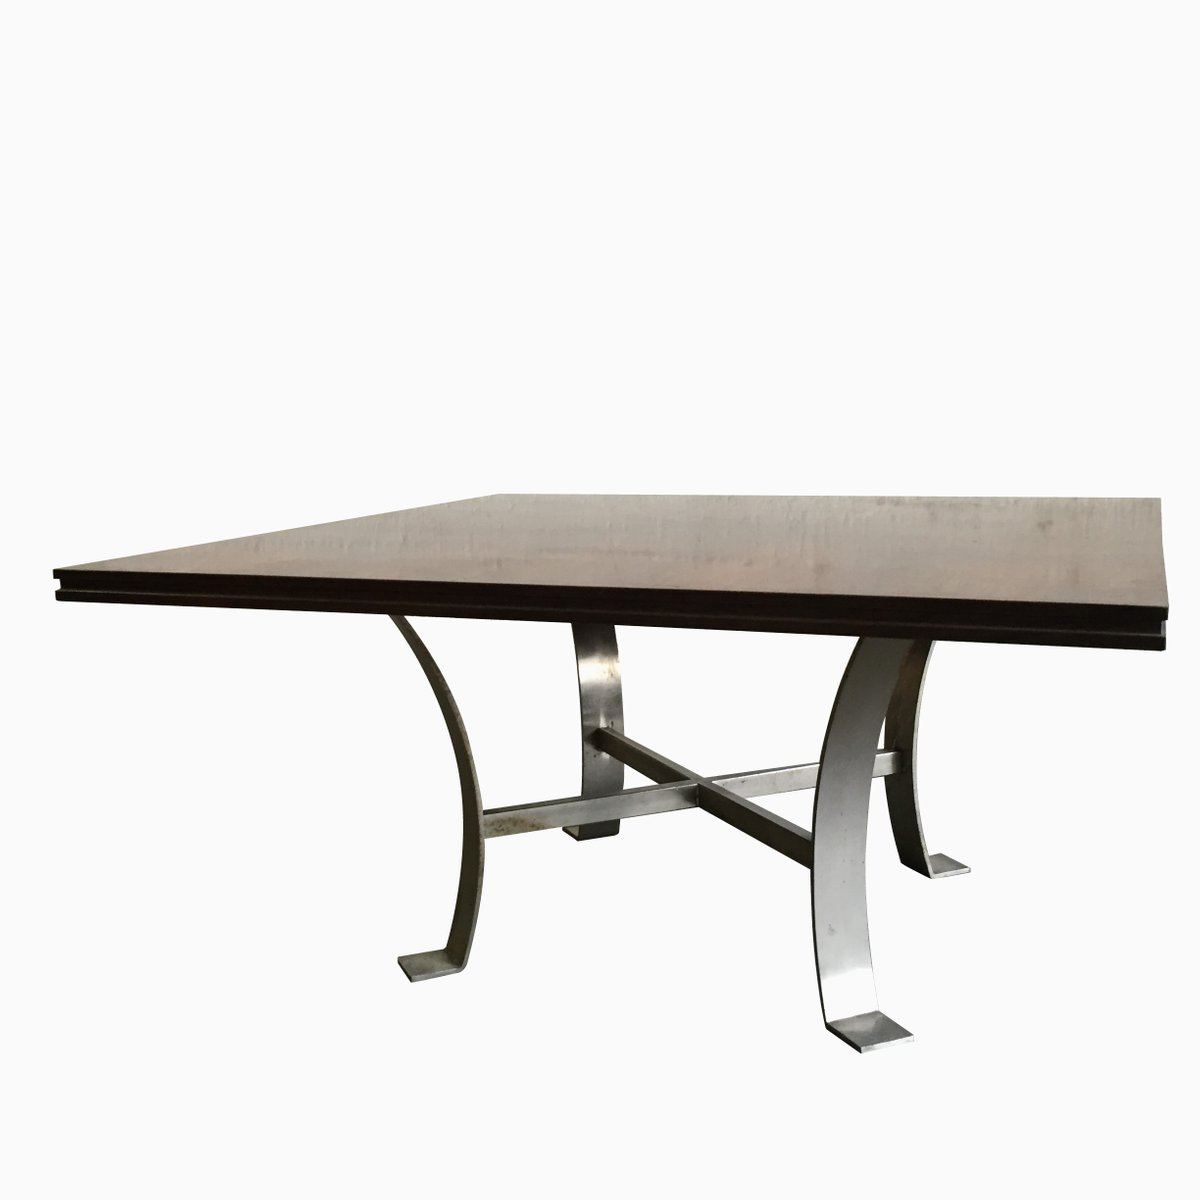 Metal Table Legs Buy Heavy Duty Folding Leg Work Tables Online 100 Dining Table Leg Shop Table